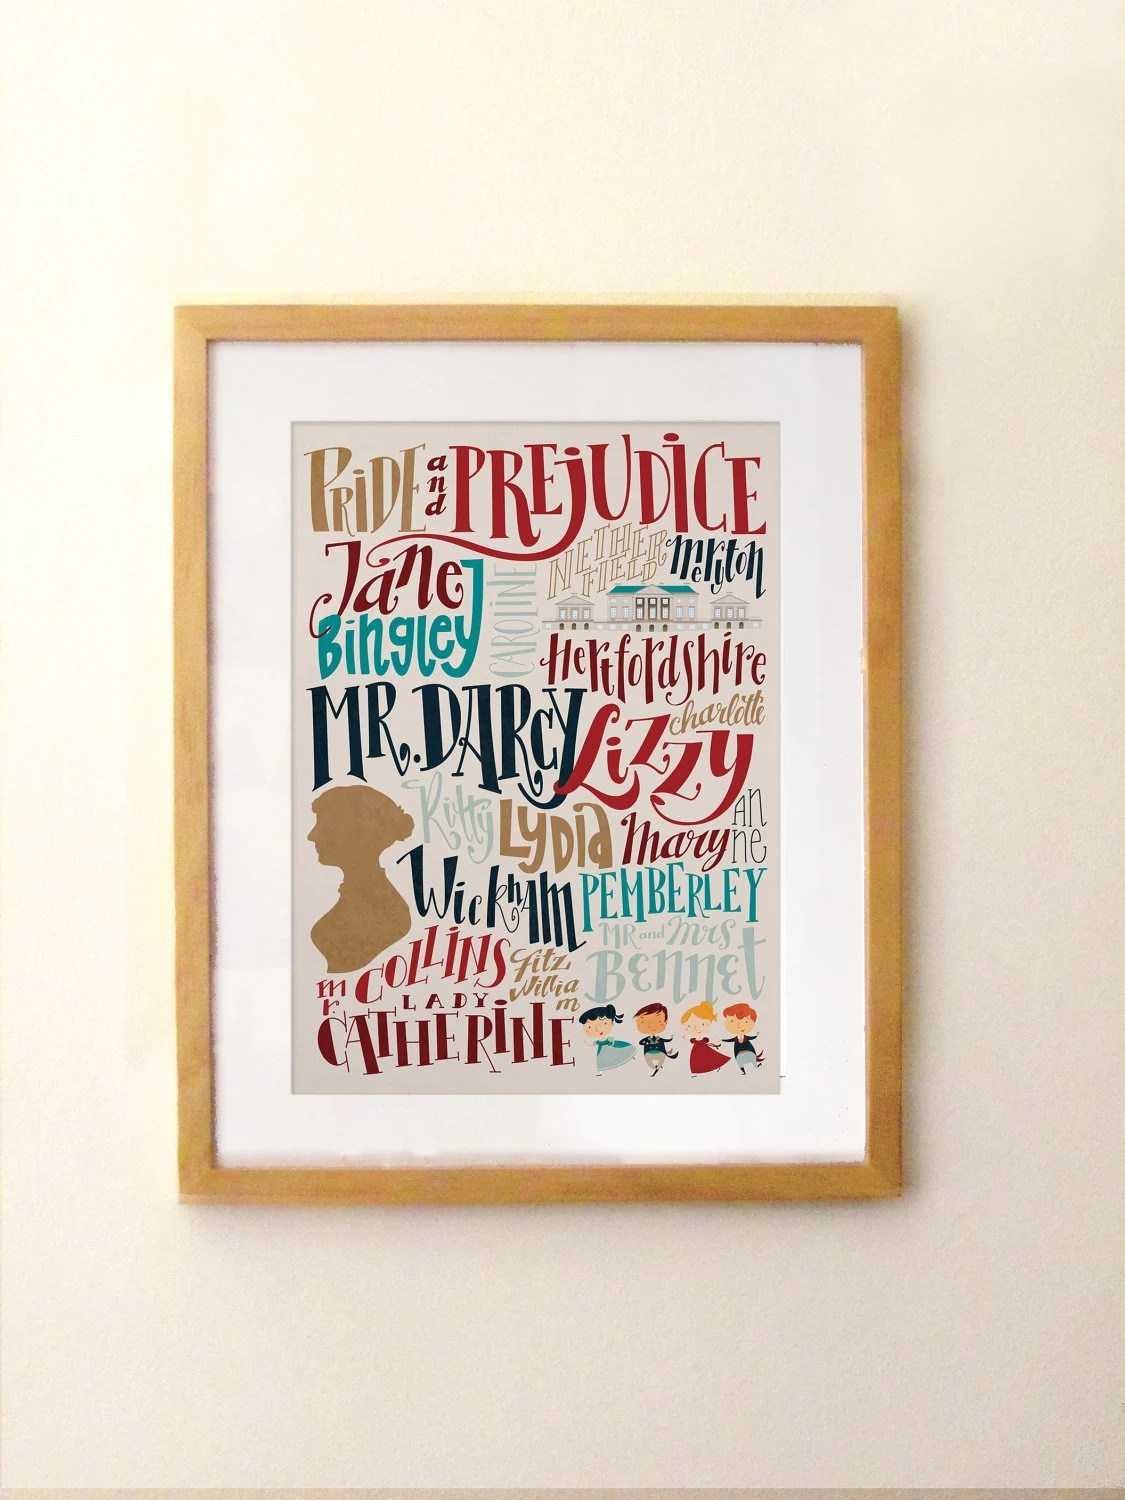 Jane Austen - Pride and Prejudice print - characters and places(12,60 x 18,10)